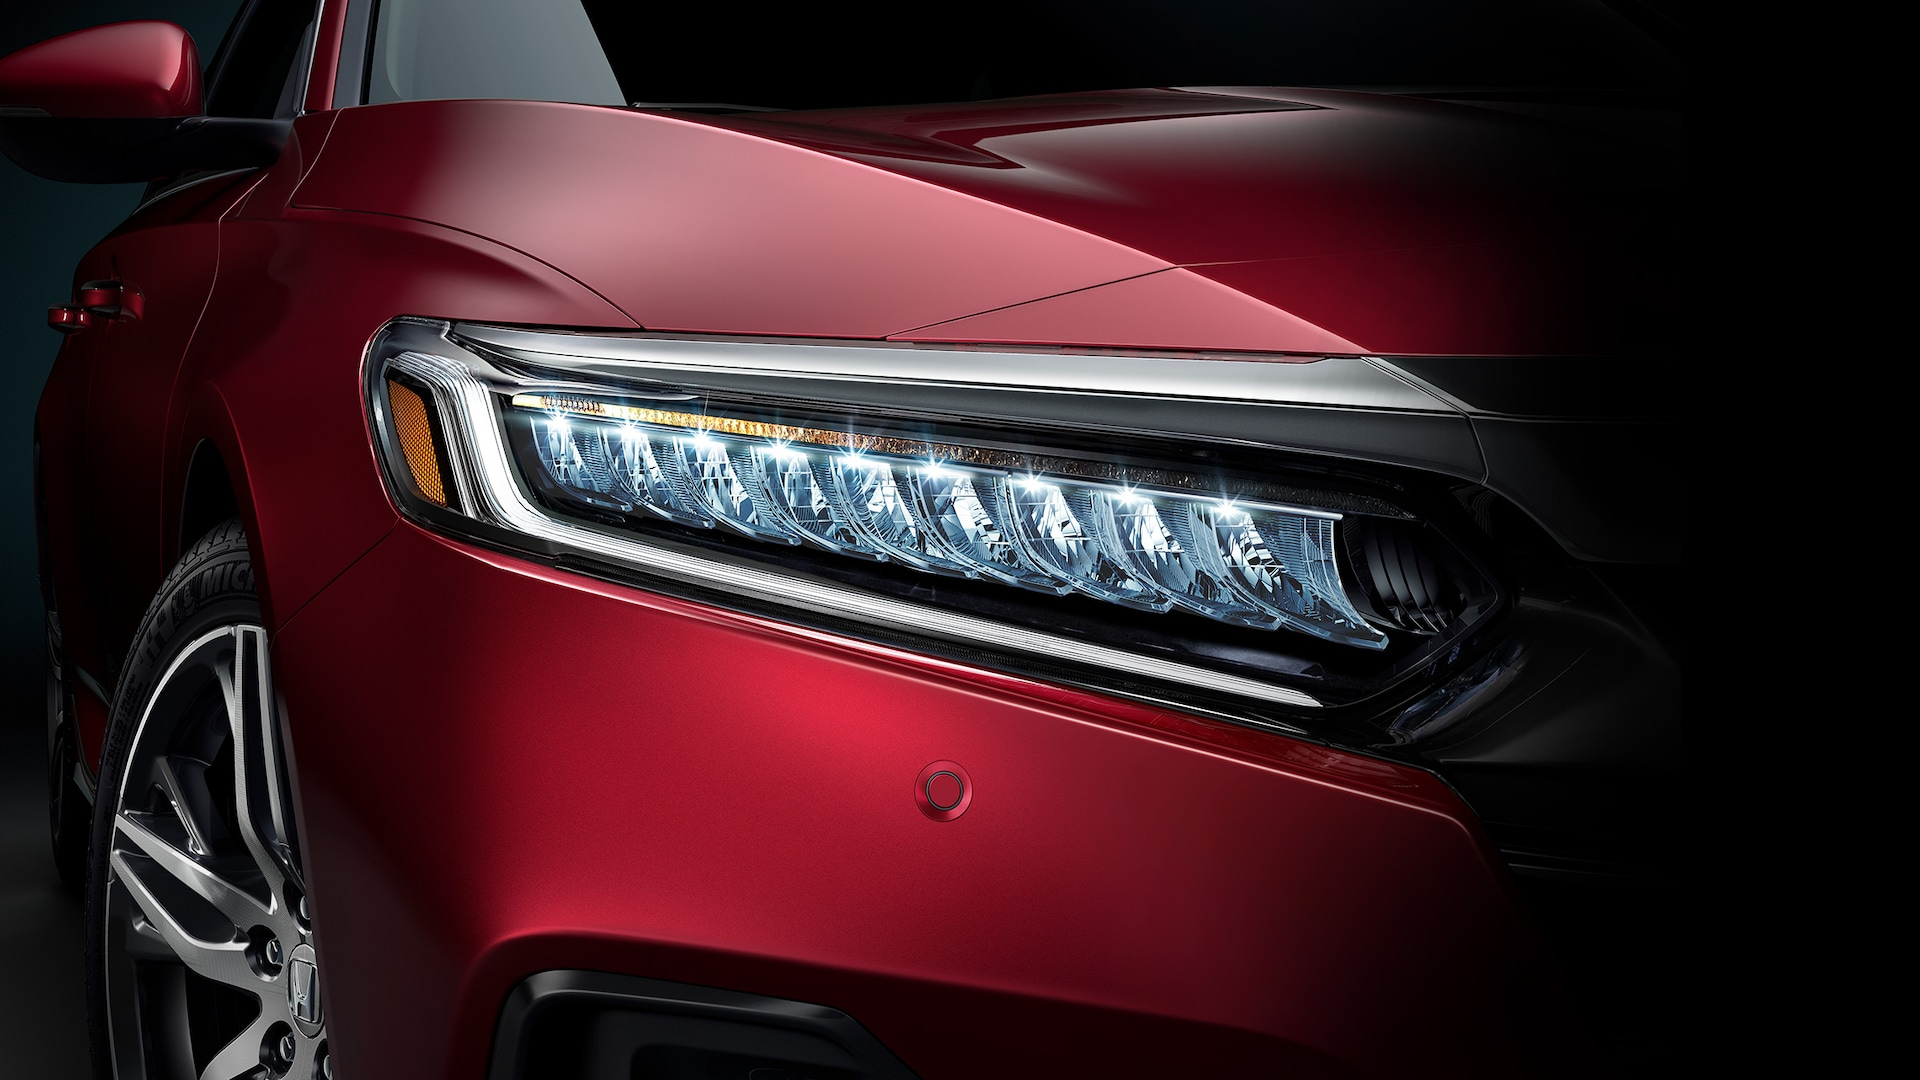 Front detail of the 2021 Accord Touring 2.0T, shown in Radiant Red Metallic, with a focus on the LED headlights.